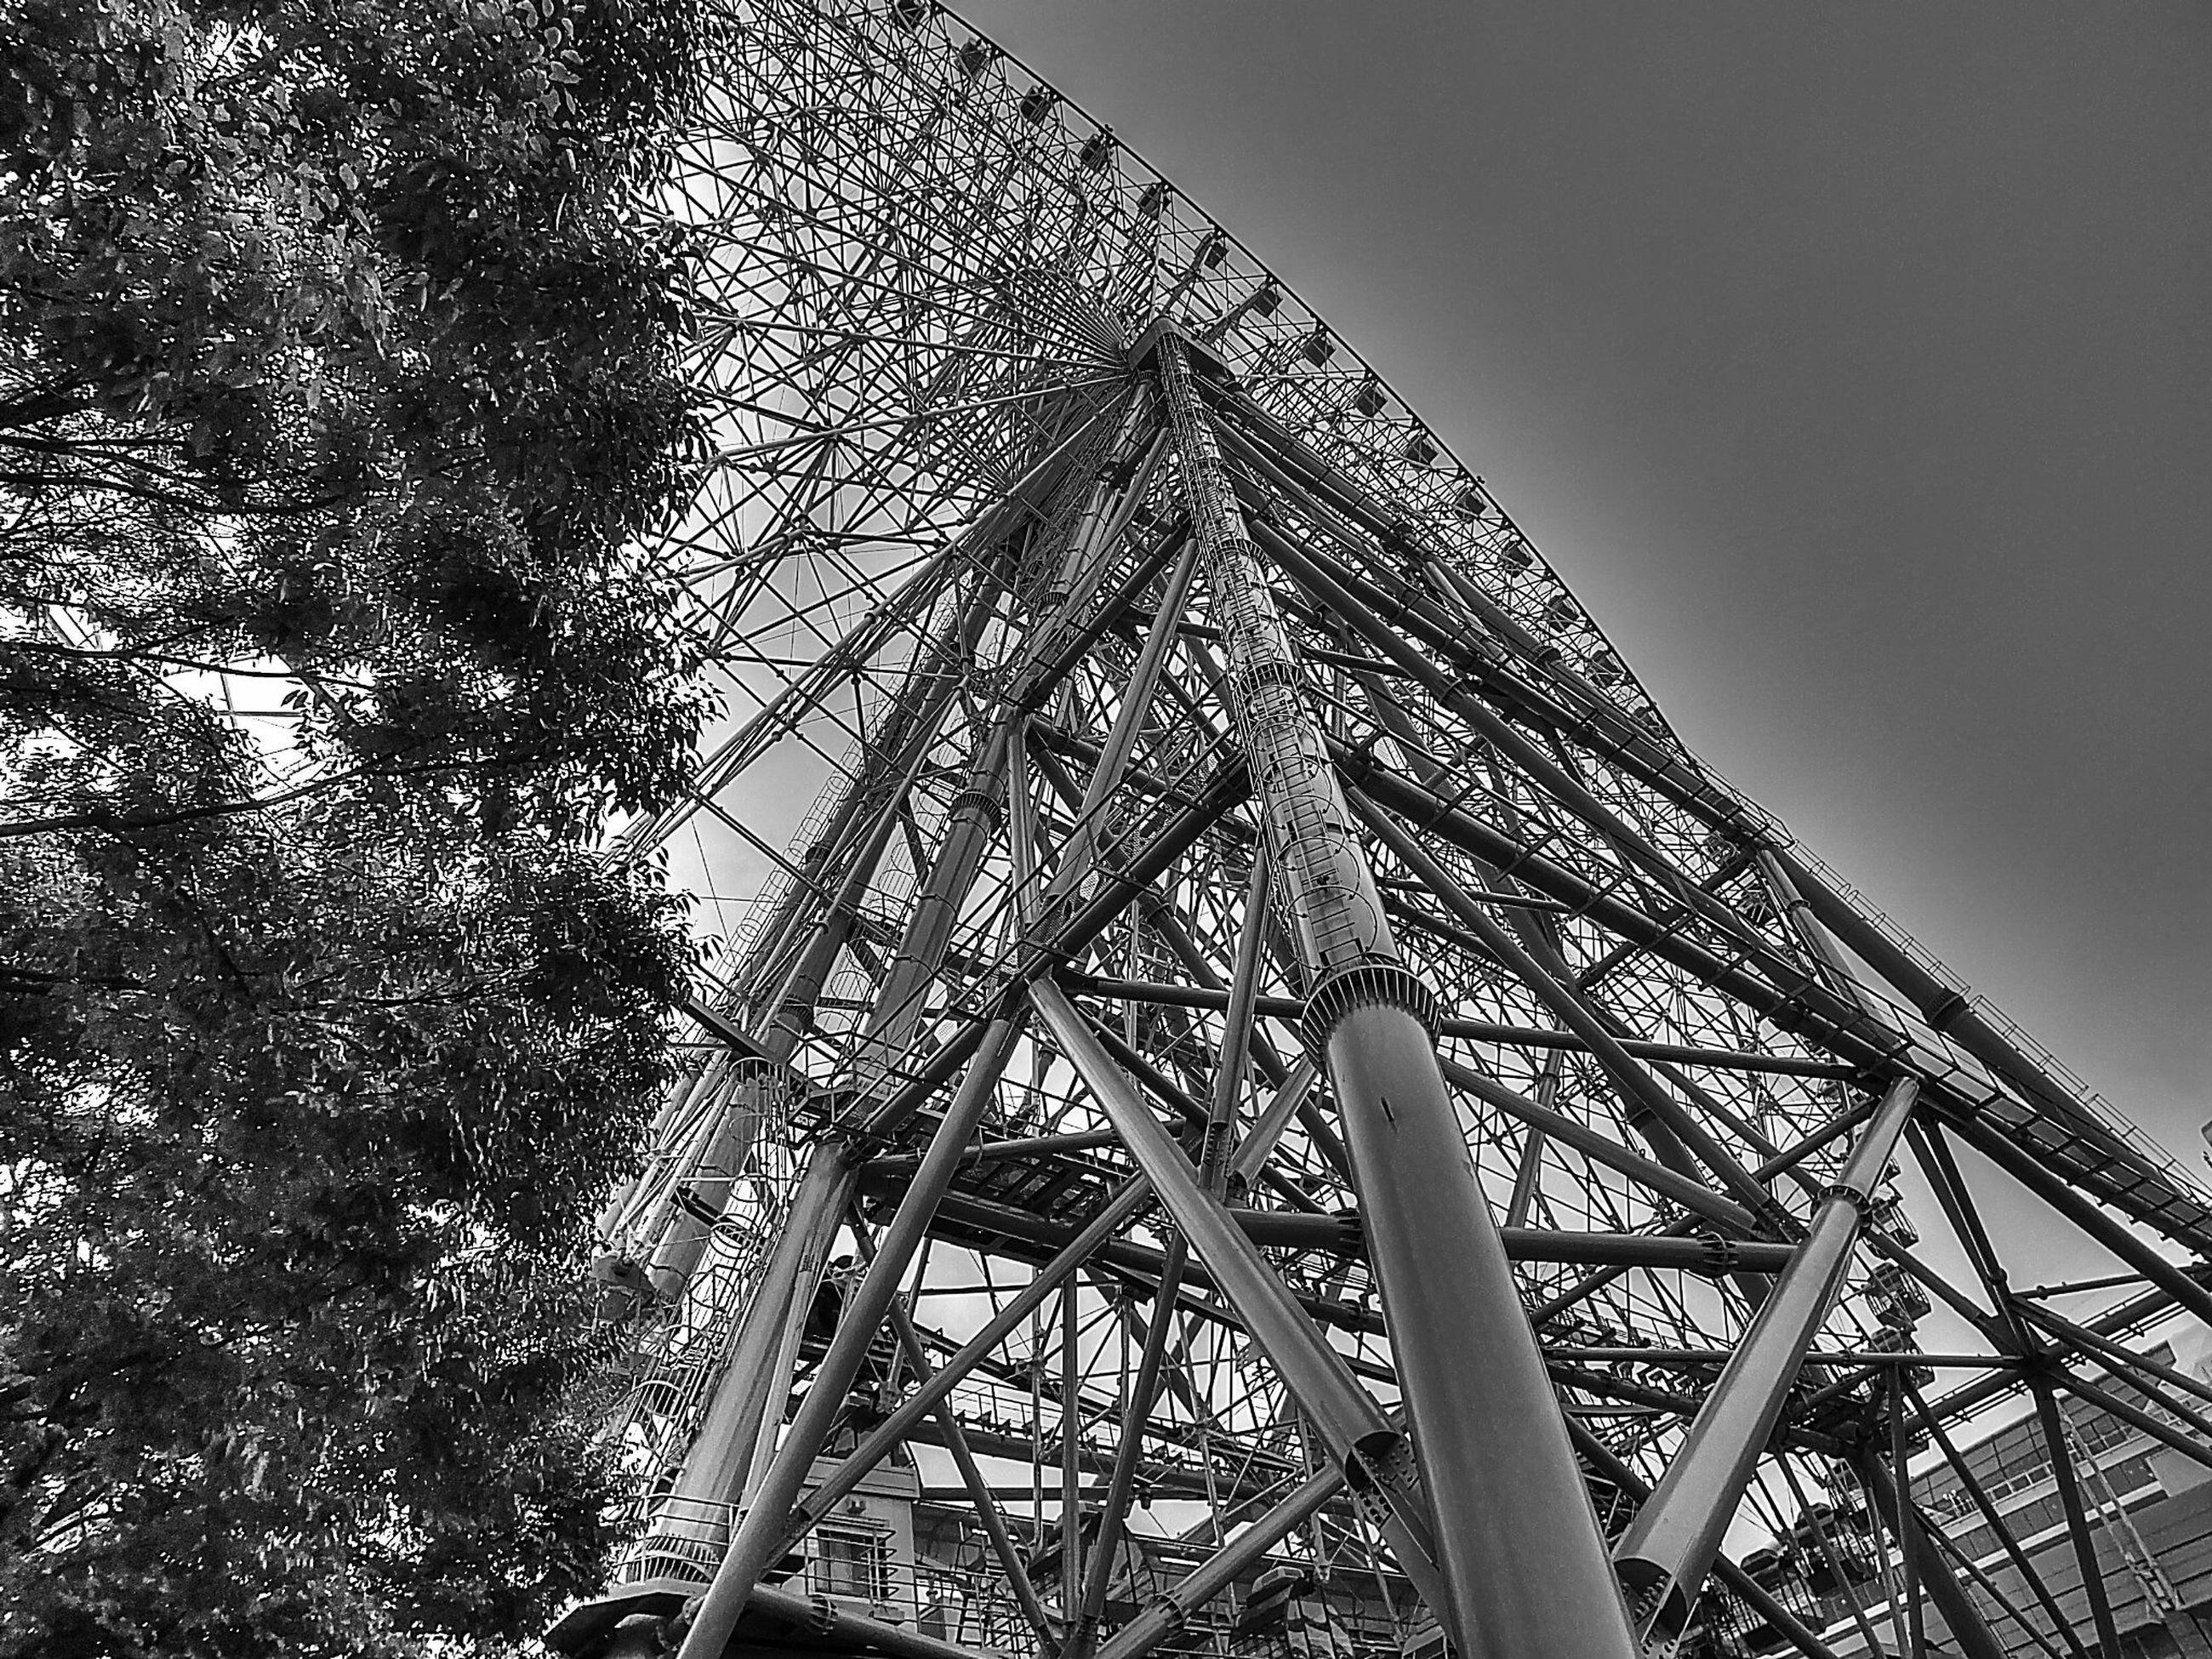 low angle view, built structure, architecture, metal, famous place, international landmark, engineering, sky, travel destinations, eiffel tower, travel, connection, capital cities, tower, tourism, metallic, bridge - man made structure, clear sky, tall - high, building exterior